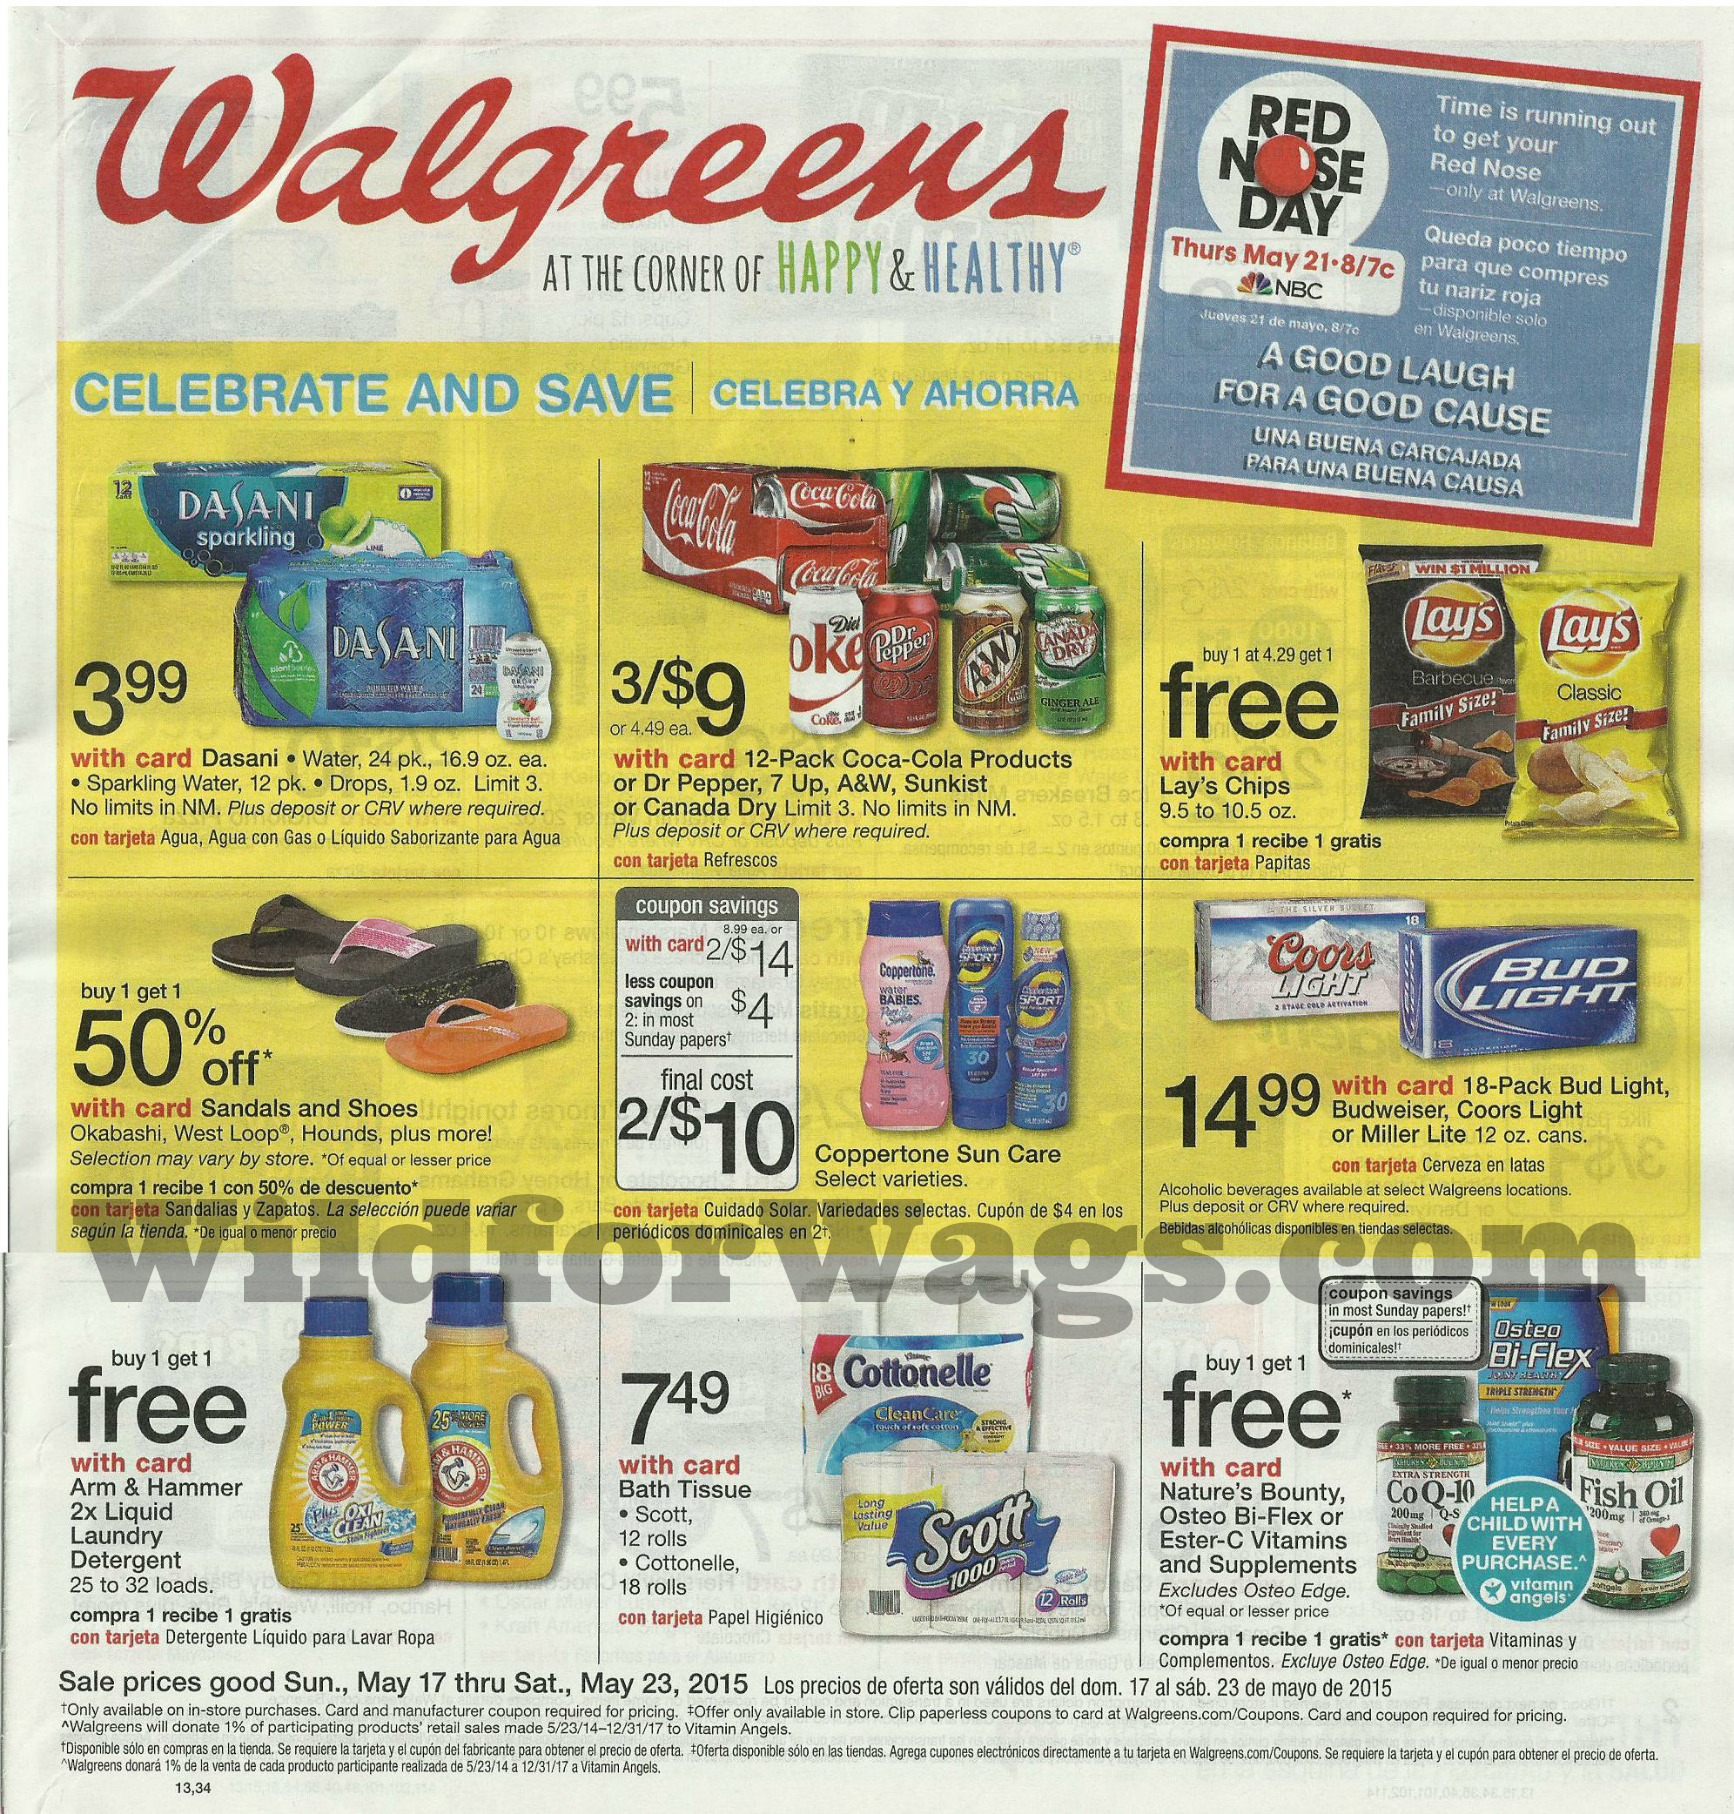 Get the latest Jewel-Osco Weekly Ad December 5 - 11, by this post. Browse the current Jewel-Osco weekly ad this week, Preview valid 12/5 - 12/ Don't miss the Jewel-Osco coupon and deals from the current ad. For brekker, dinner, and snacking time, your choices are limitless in this Jewel-Osco ad. Delicious aromas wafting from the Bakeries would be a best choice for every morning.